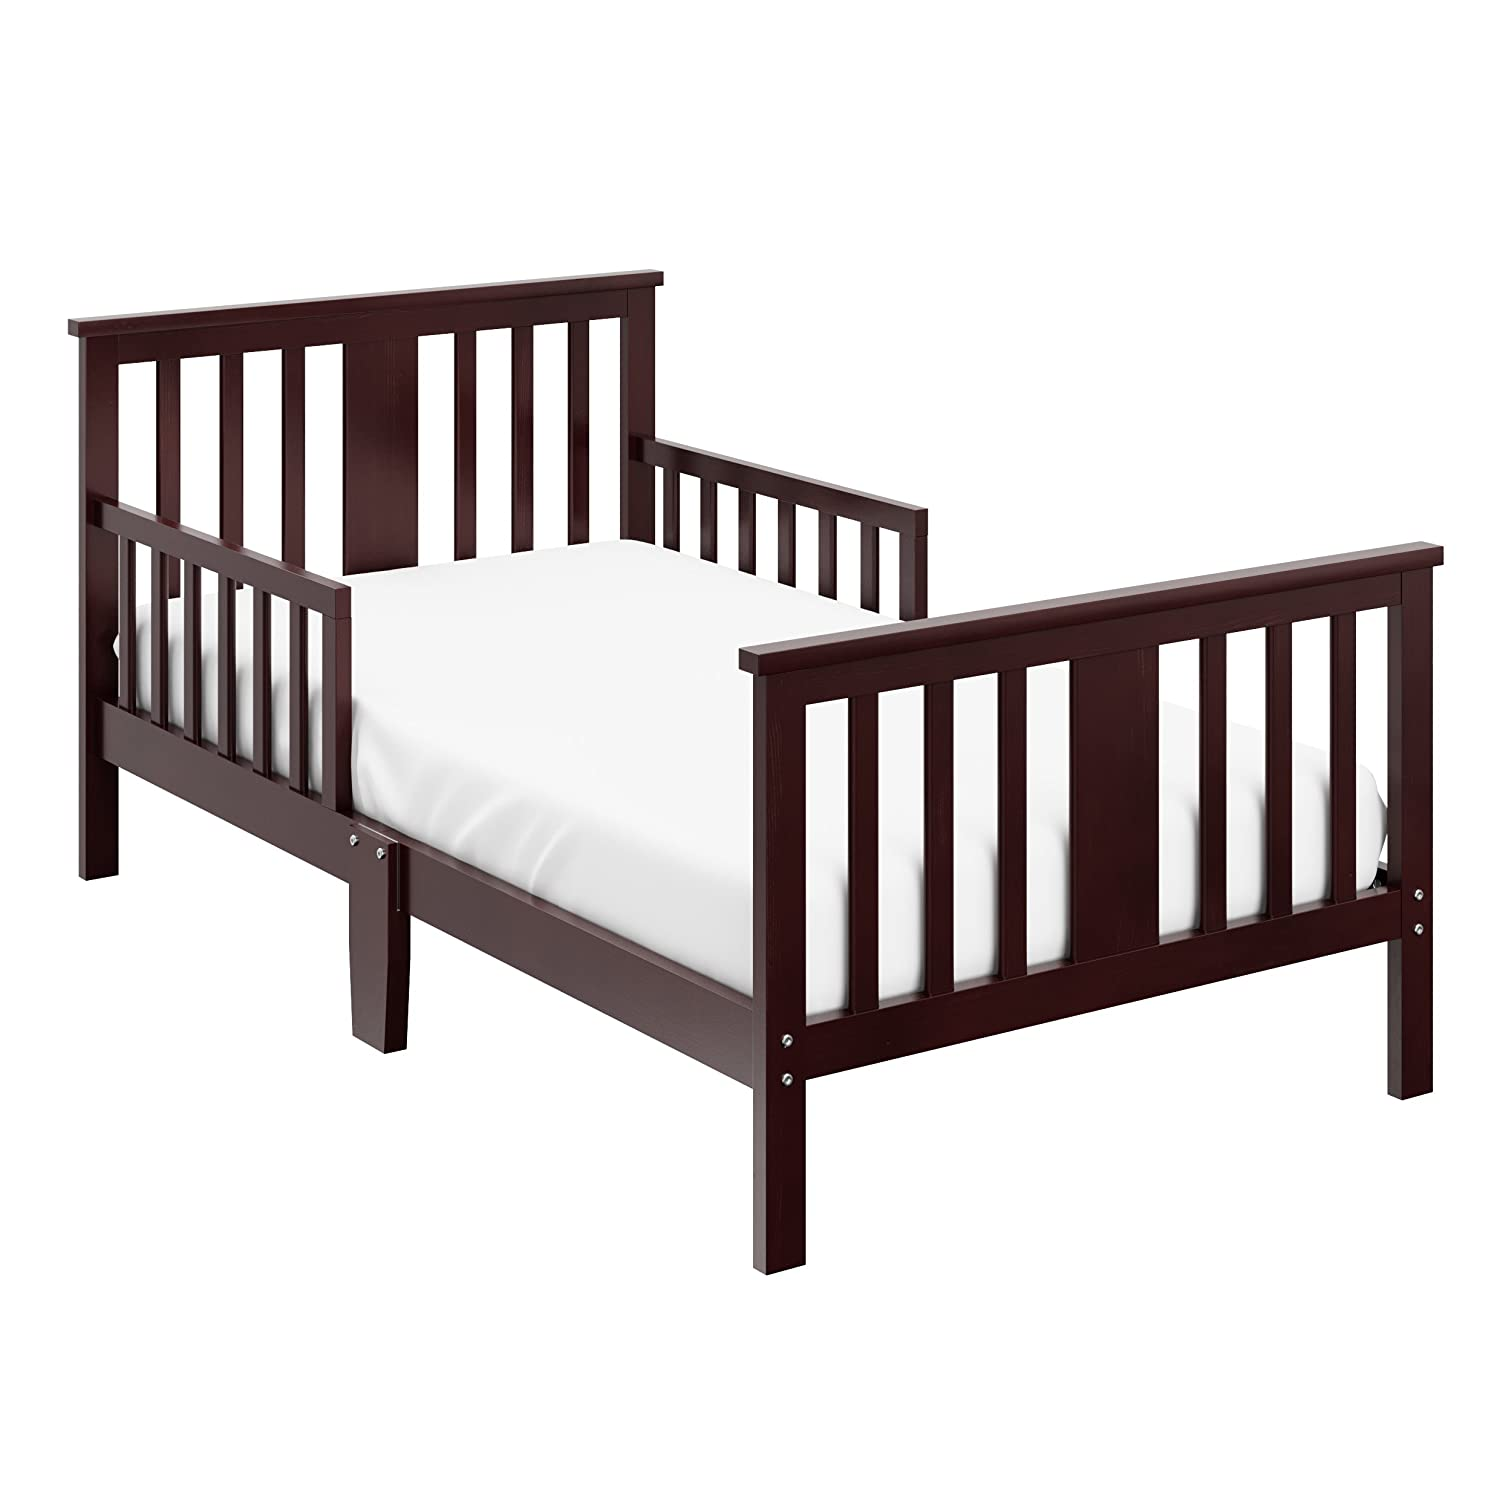 Storkcraft Mission Ridge Toddler Bed Espresso Fits Standard-Size Toddler Mattress, Guardrails on Both Sides for Protection, Meets or Exceeds all Federal Safety Standards, Pine & Composite Construction 05250-109